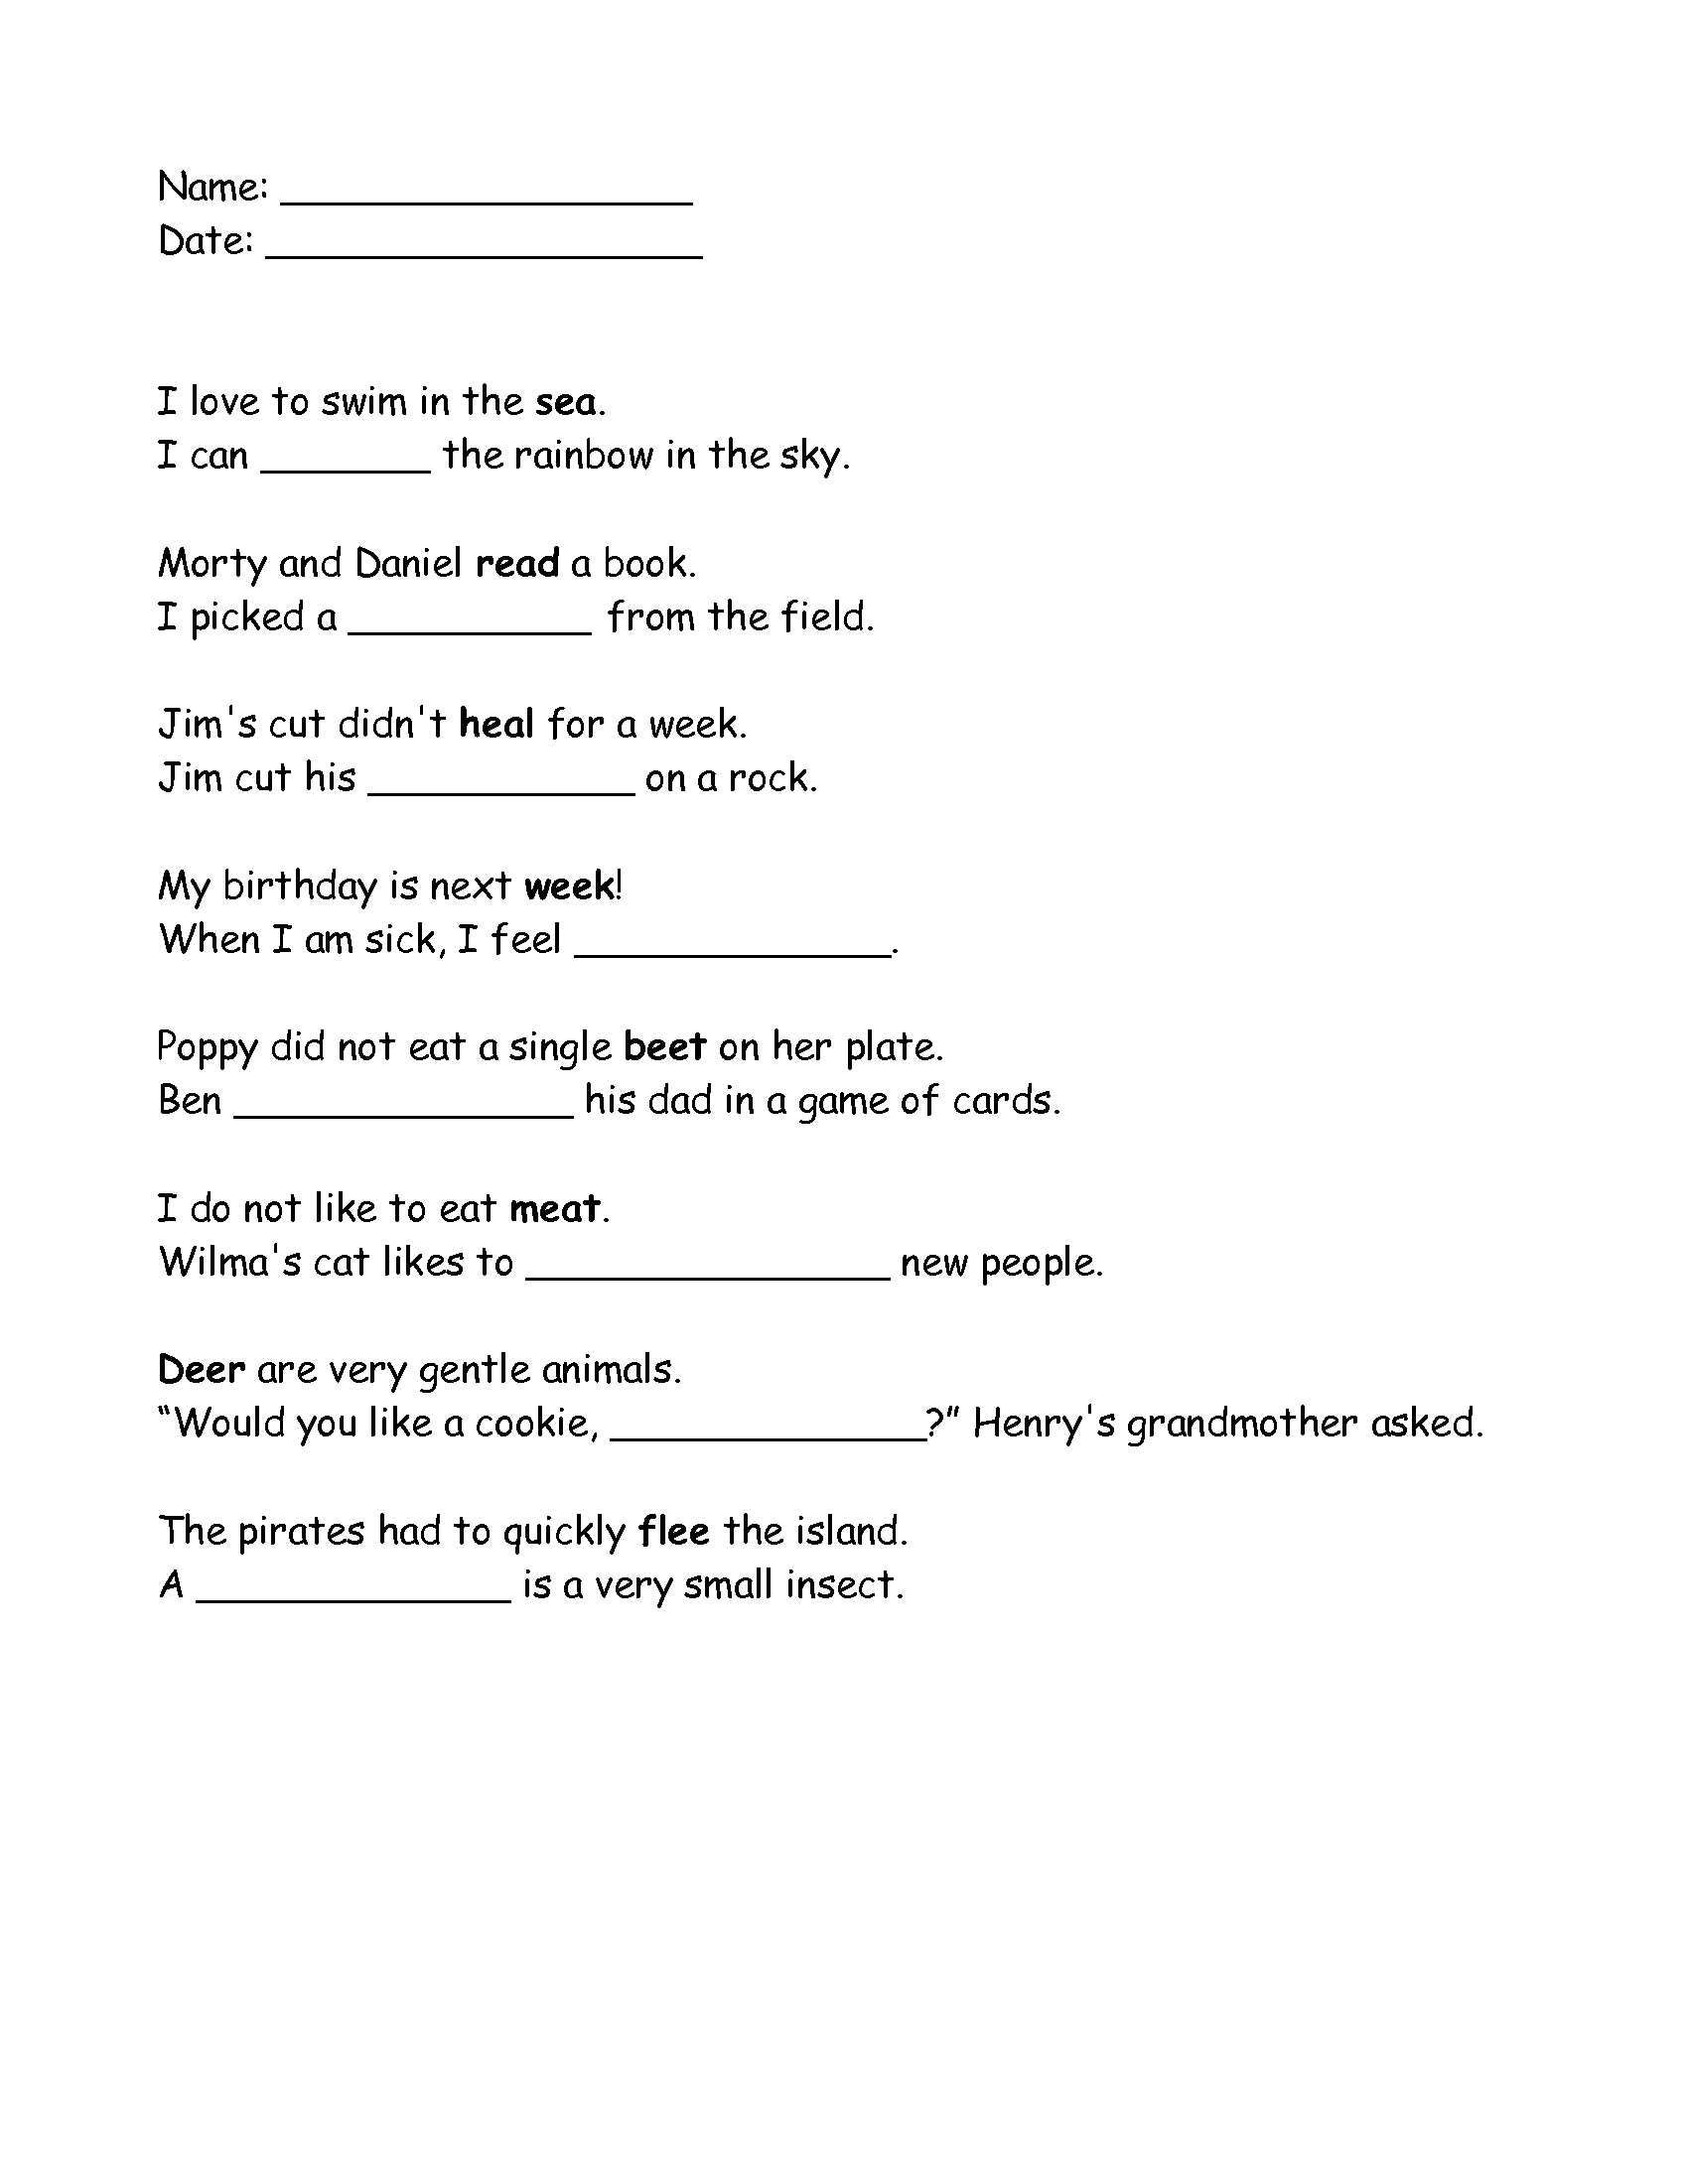 Homophones Worksheet 4th Grade Grade 2 Homophones Ee and Ea Worksheet that I Made Click